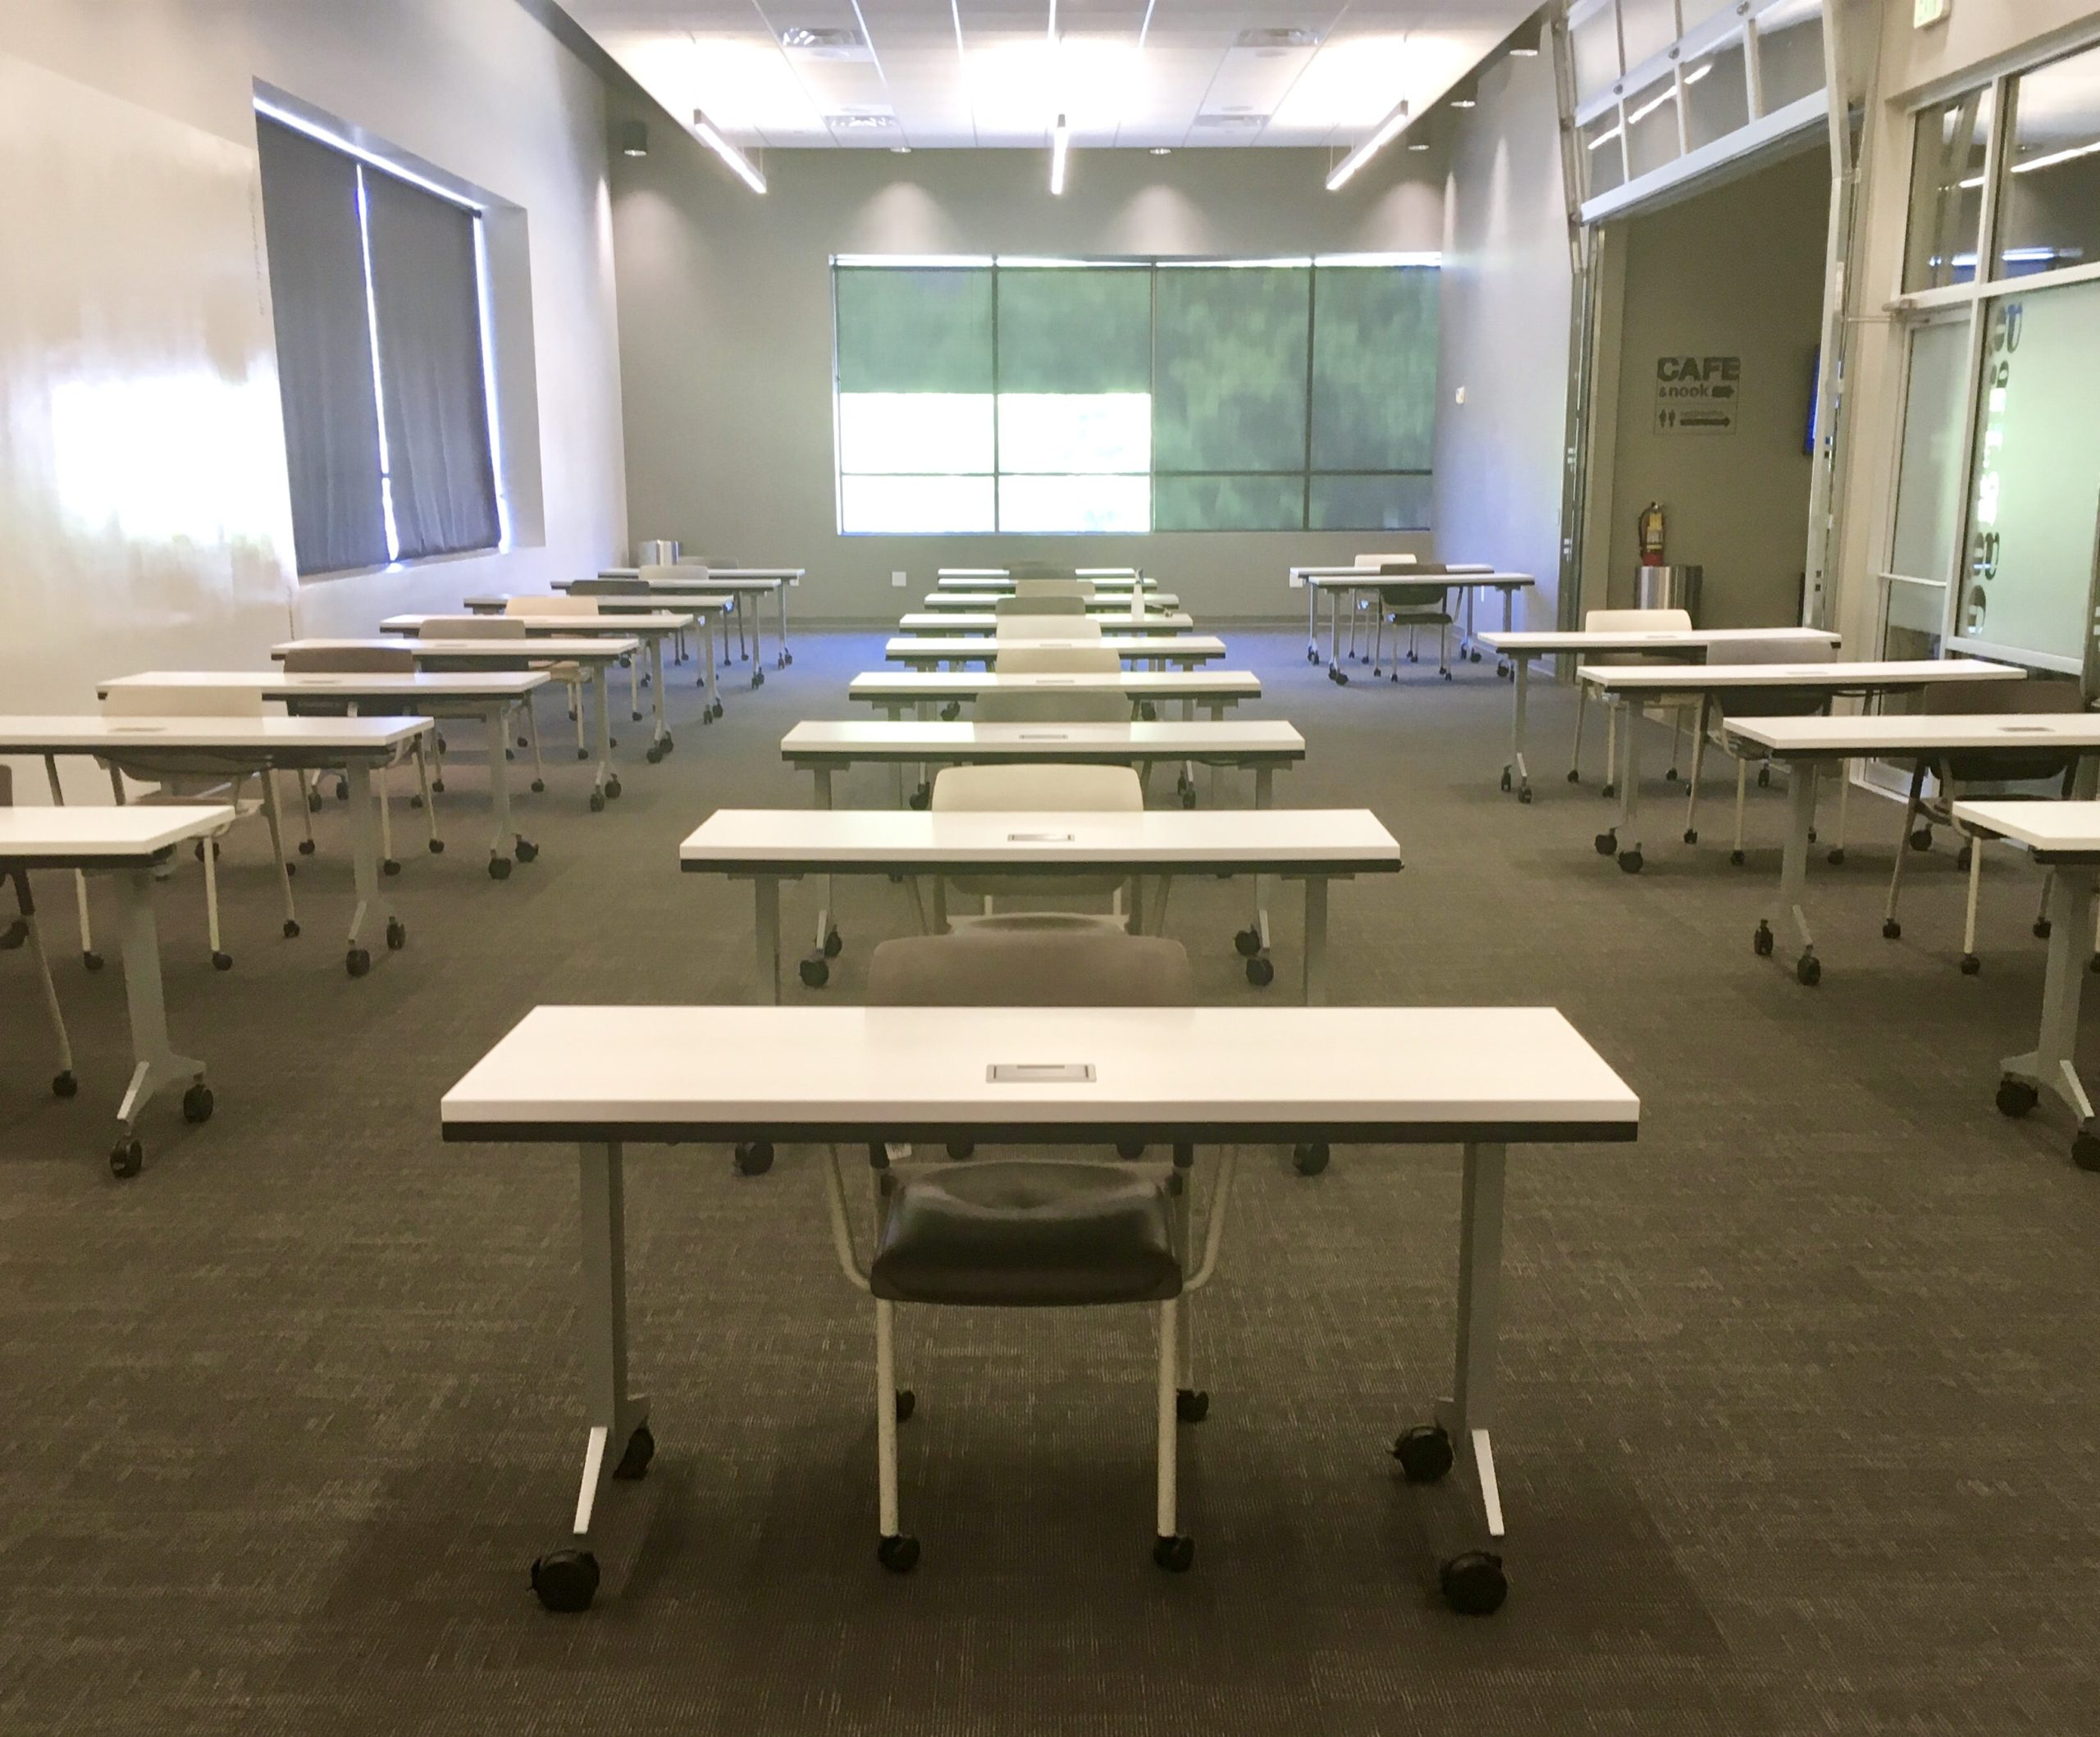 Meeting room with social distanced tables